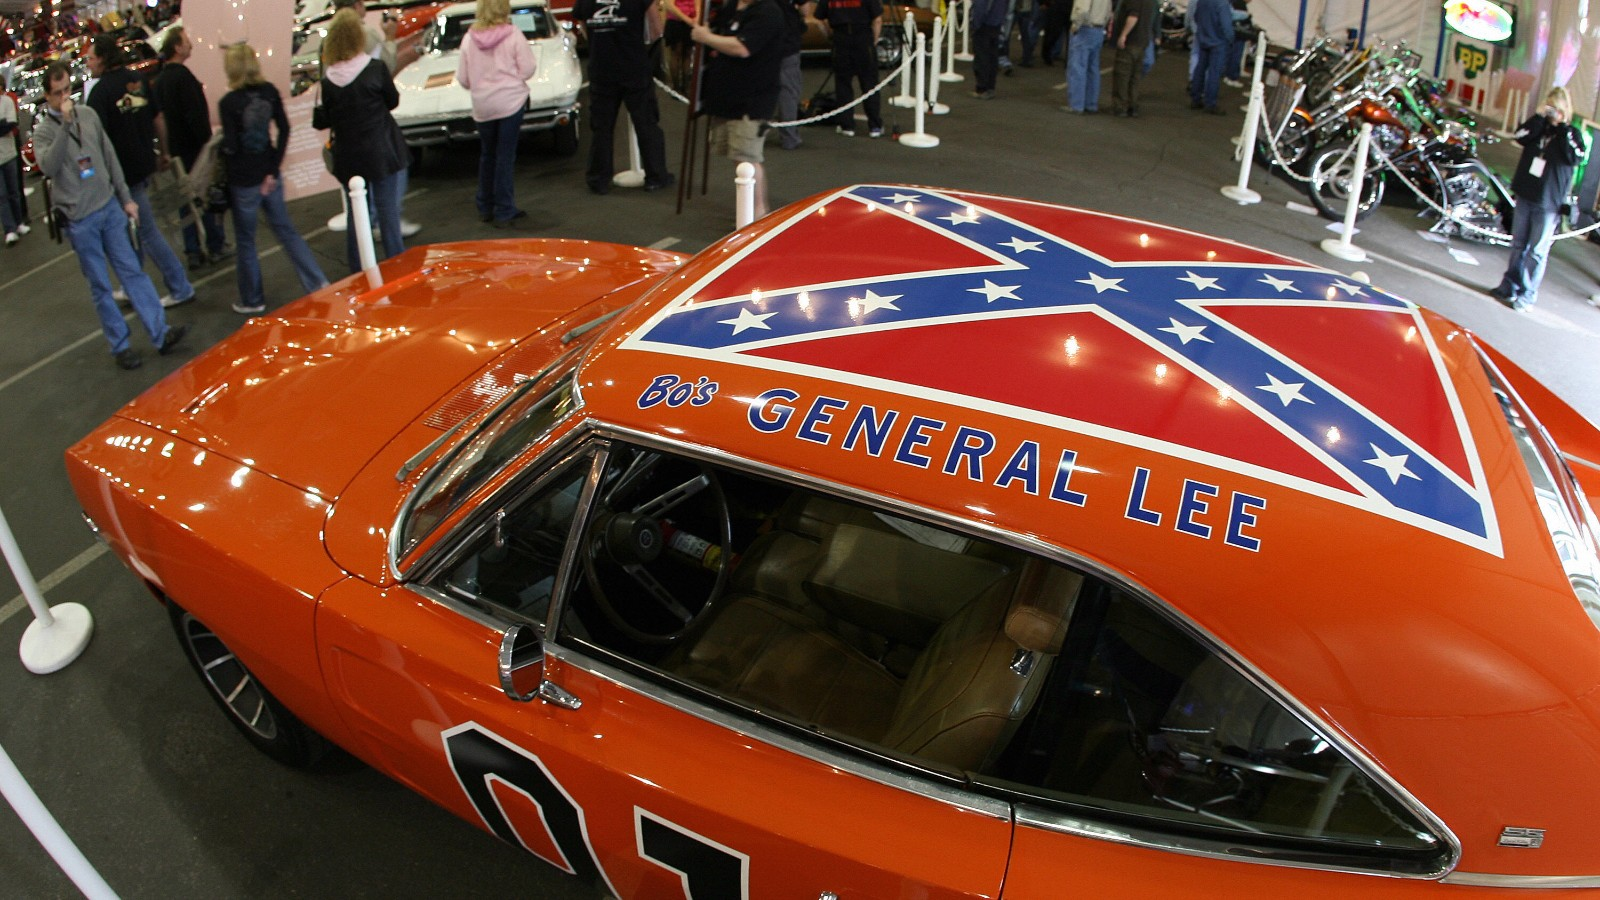 The General Lee 'Dukes of Hazzard' museum is not moving, the museum says